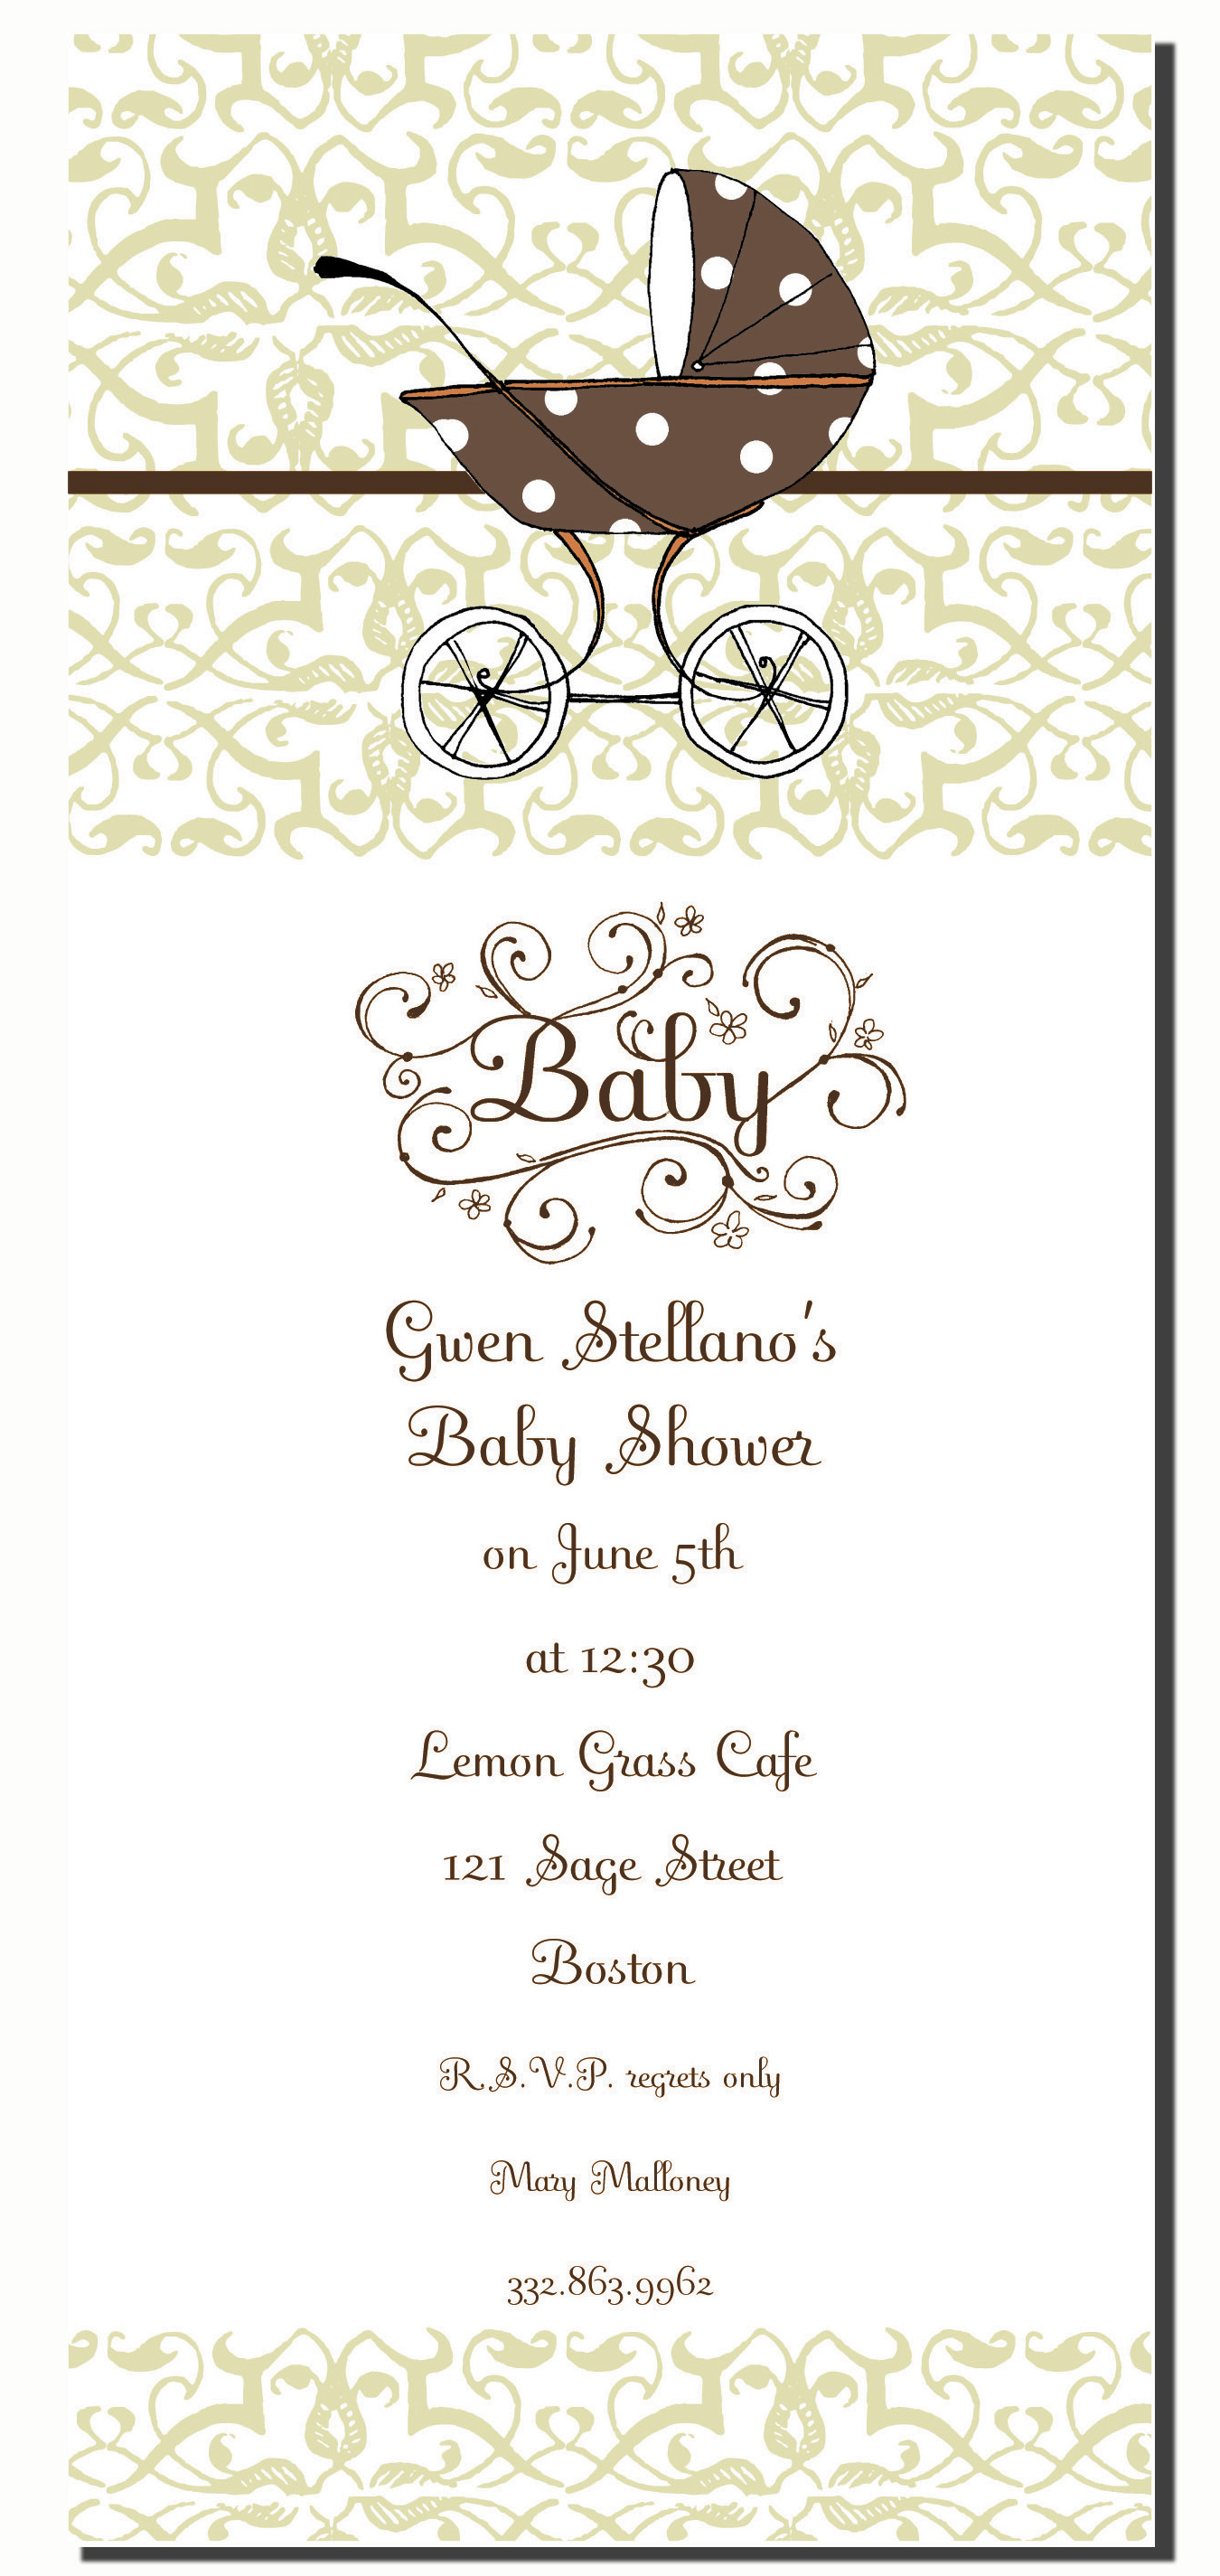 "Apples Cart - Great Baby shower design! This slim invitation has beautiful light green damask designs along the top and bottom of the invitation and a fun polka dot chocolate colored baby carriage on the top center of the invitation.  This fun 4x9.25 invitation comes  blank or let us print them for you. . ""BABY"" along with design is pre-printed on invitation. Includes color coordinating envelopes."